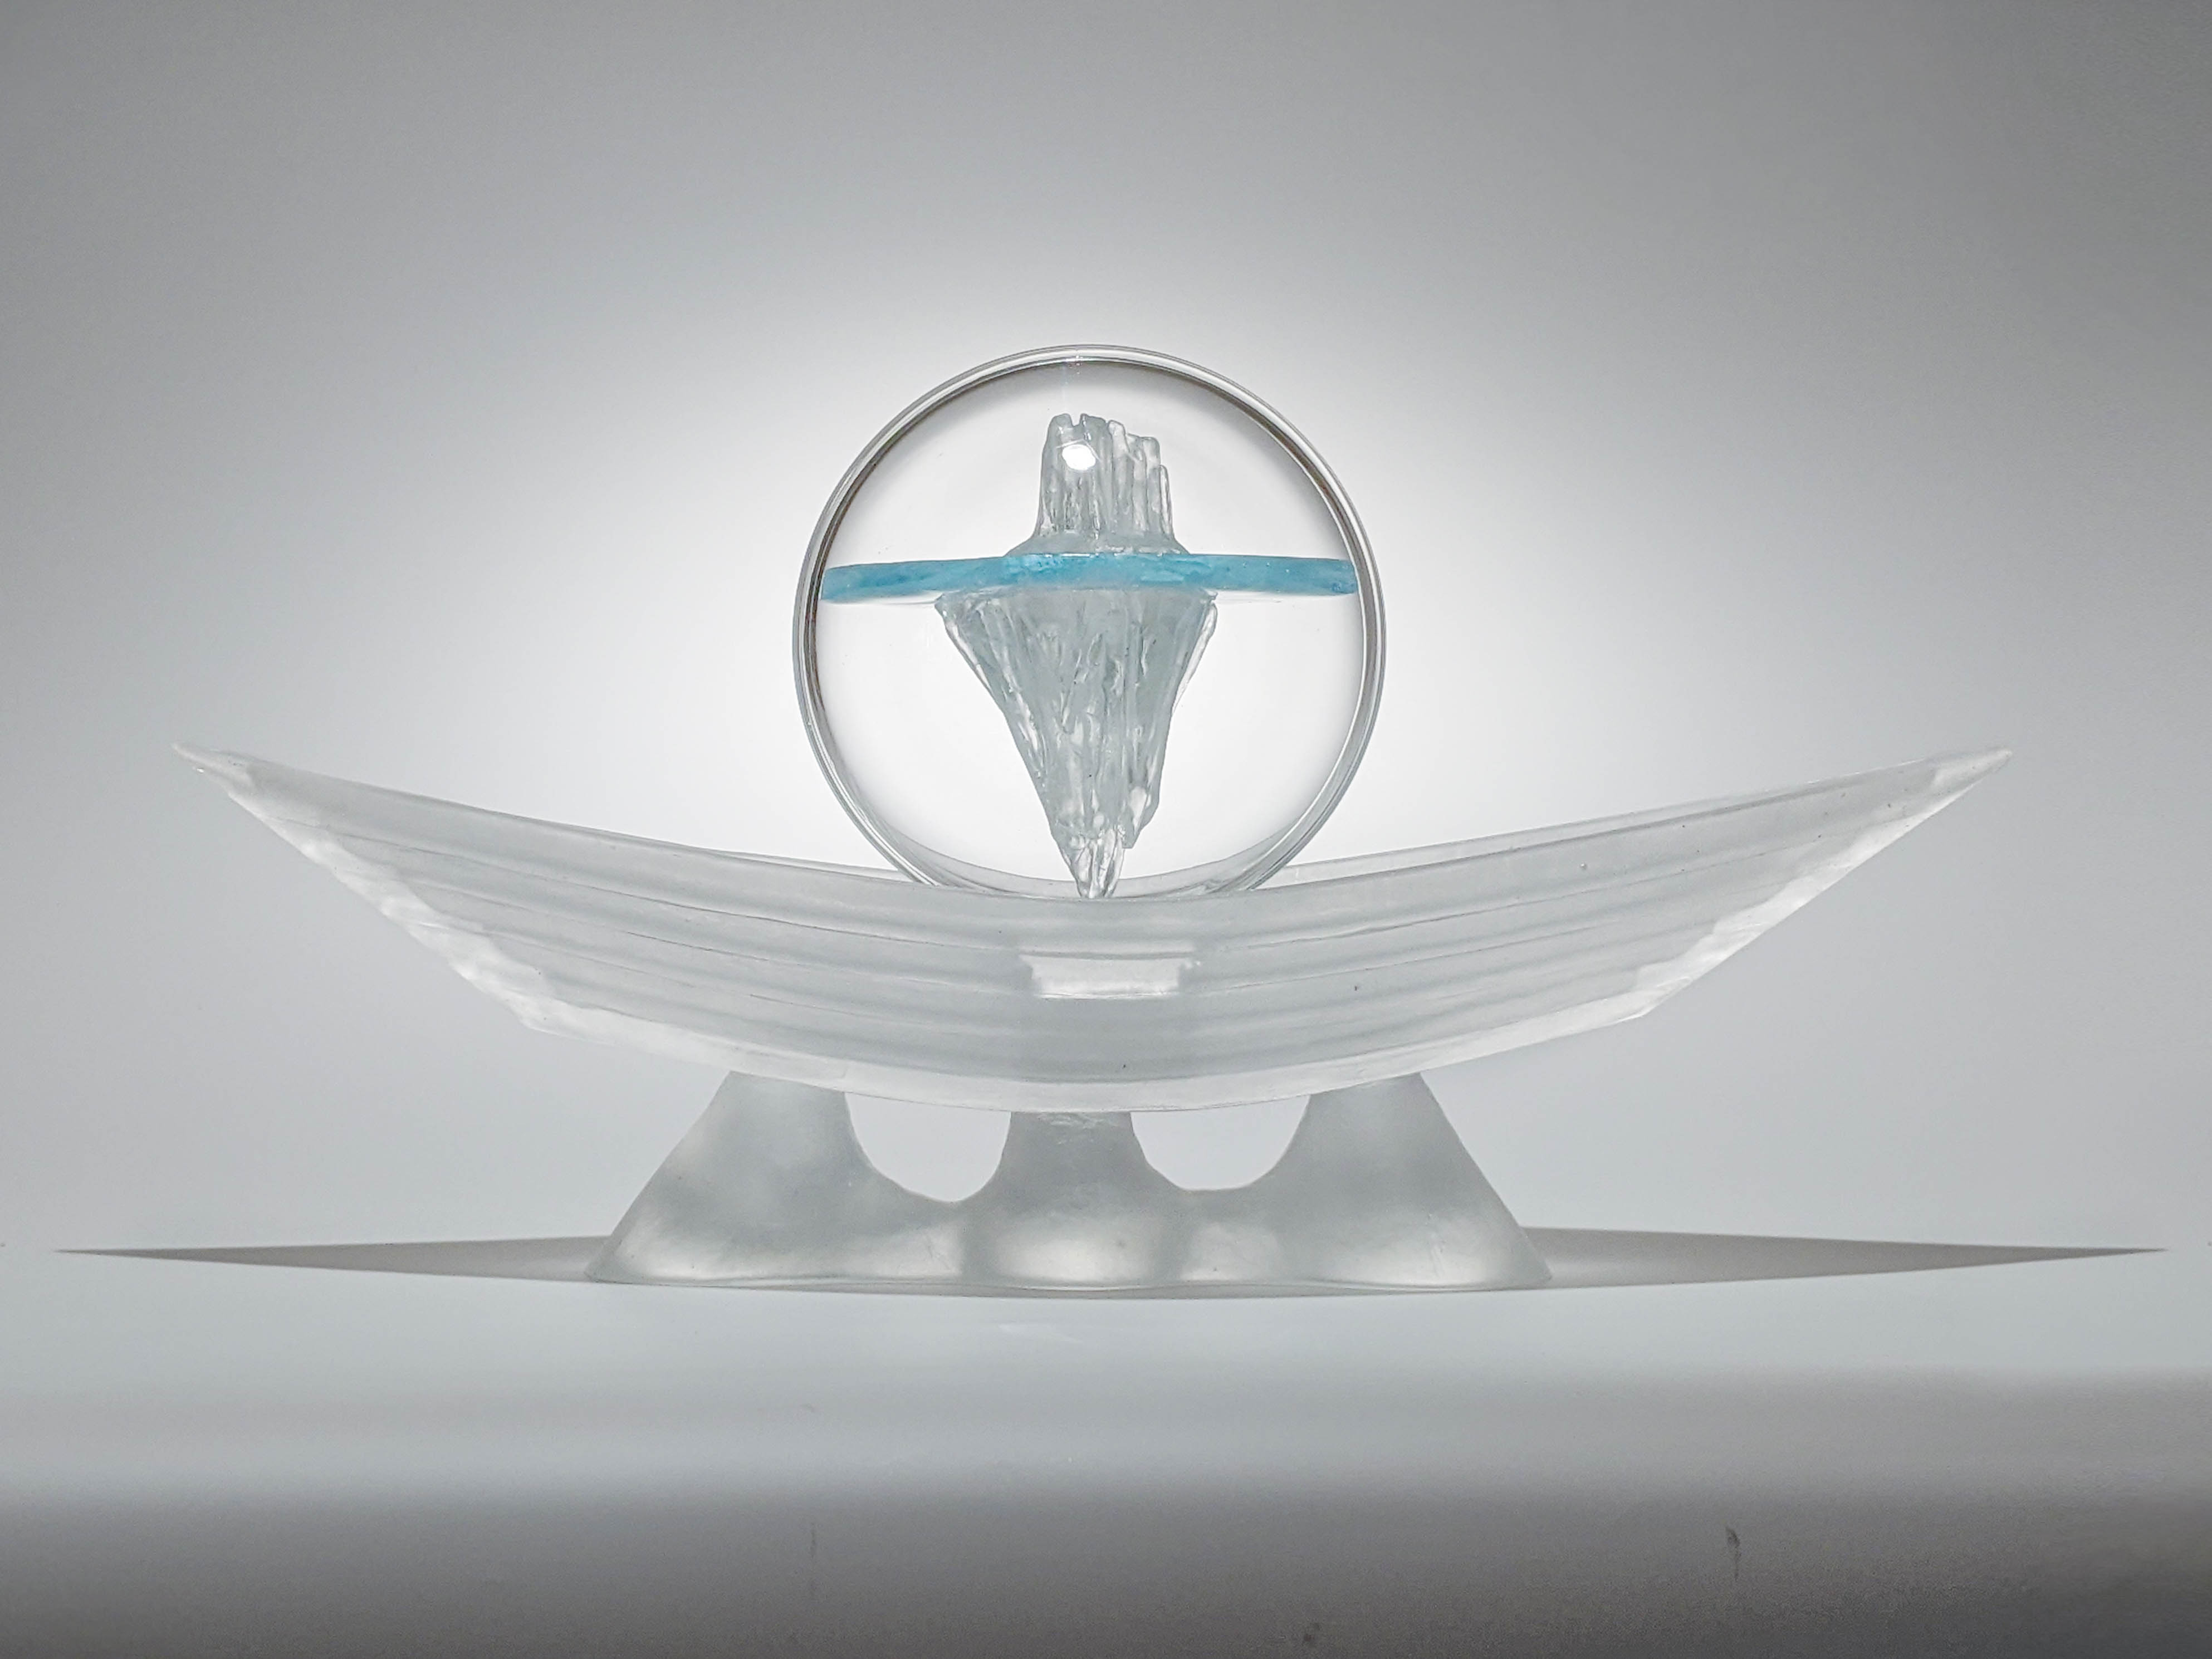 Sculpture of glass boat with iceberg.